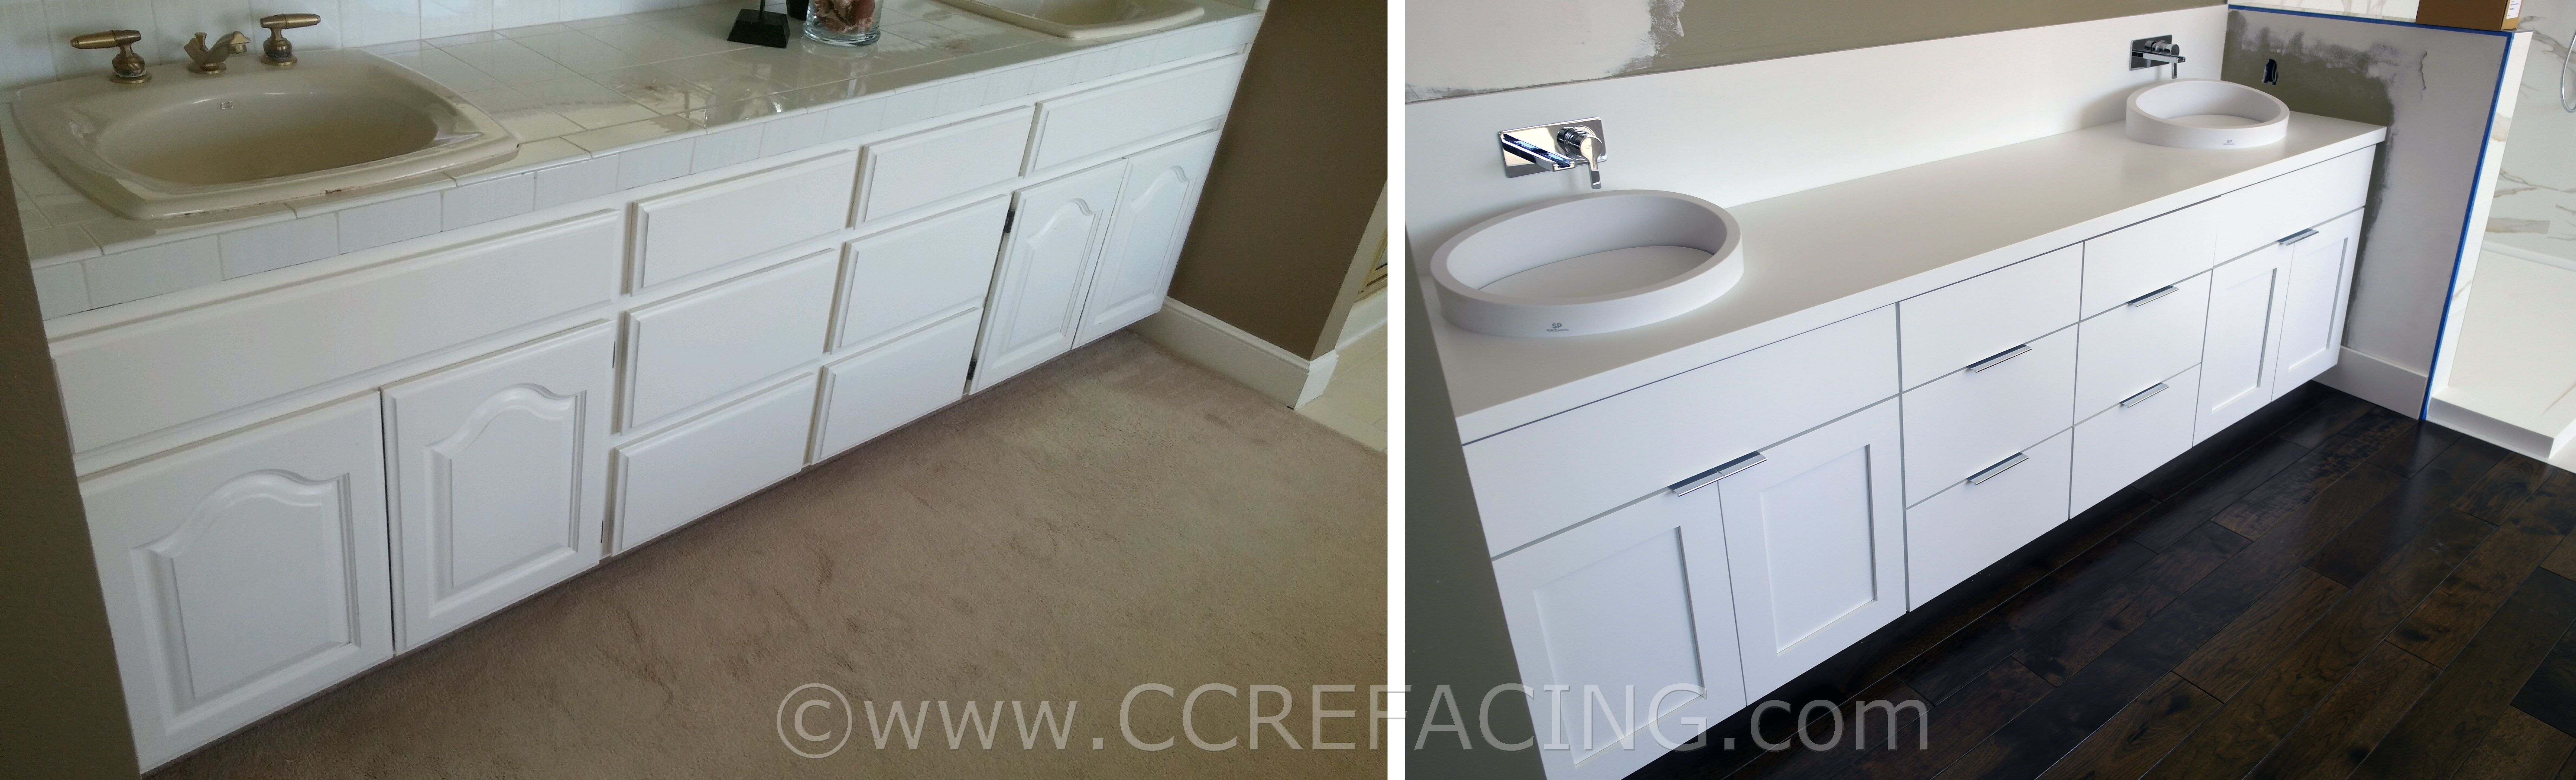 Palo Alto cabinet reface (refacing, resurfacing) with White & Gray ...